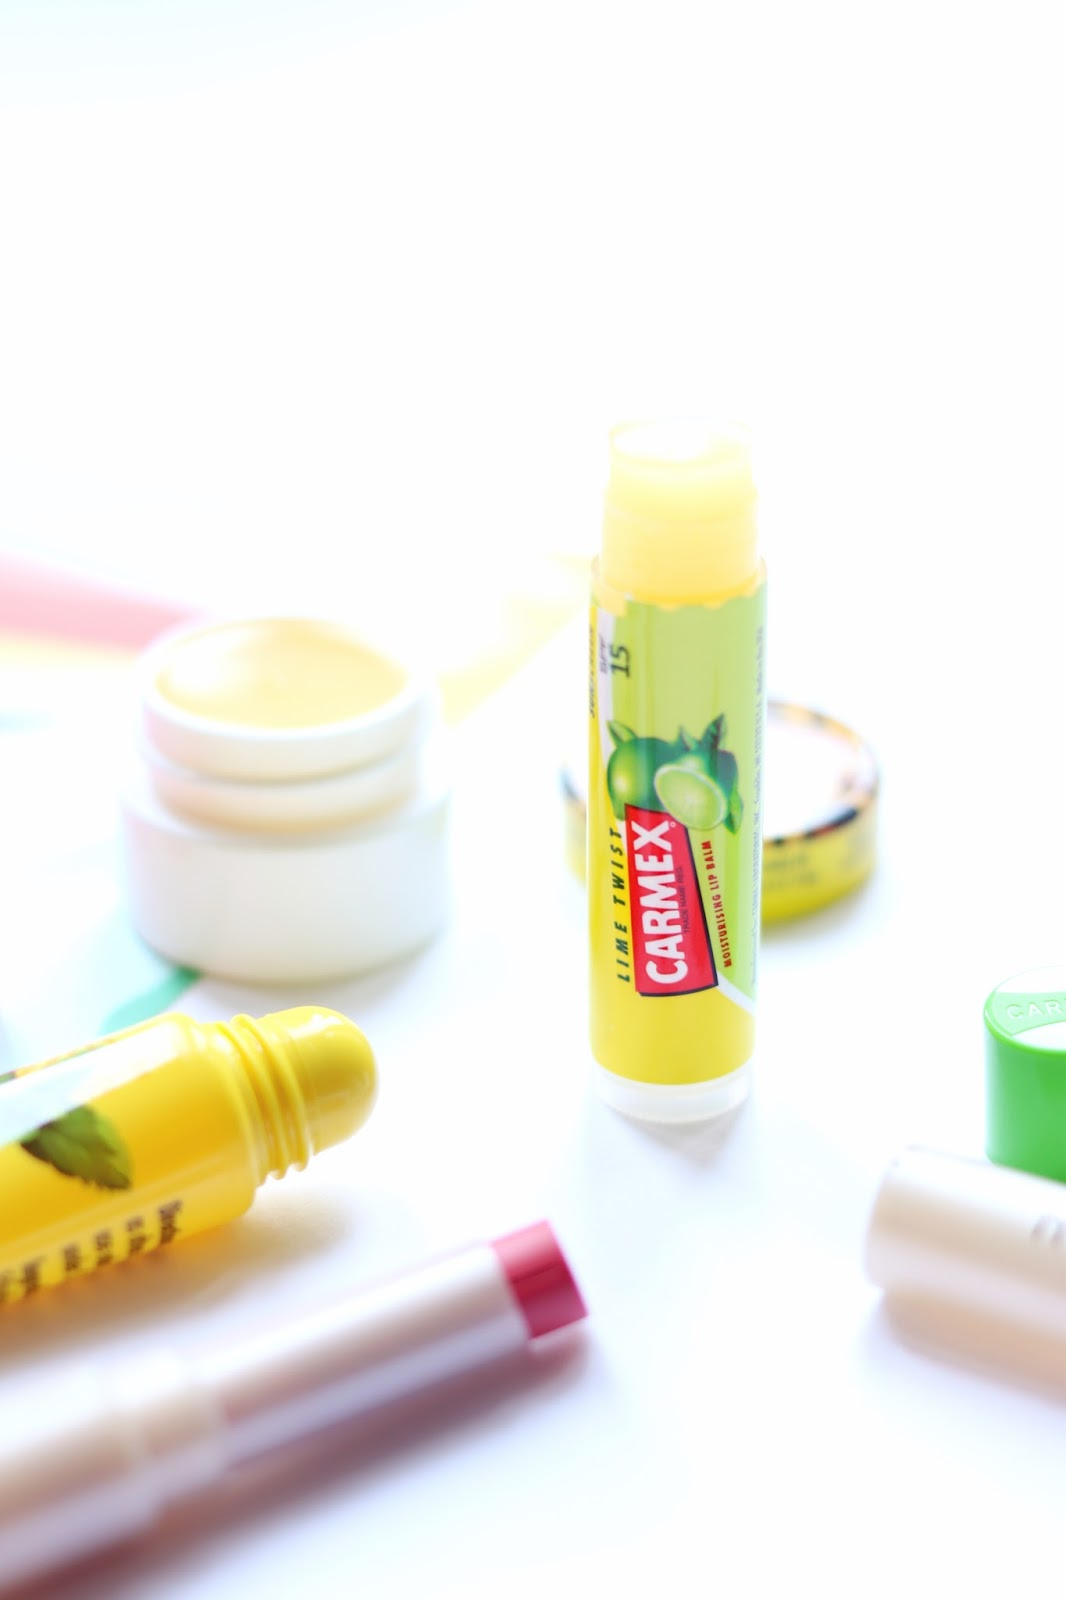 august gratitude list - Carmex Lime Lip Balm